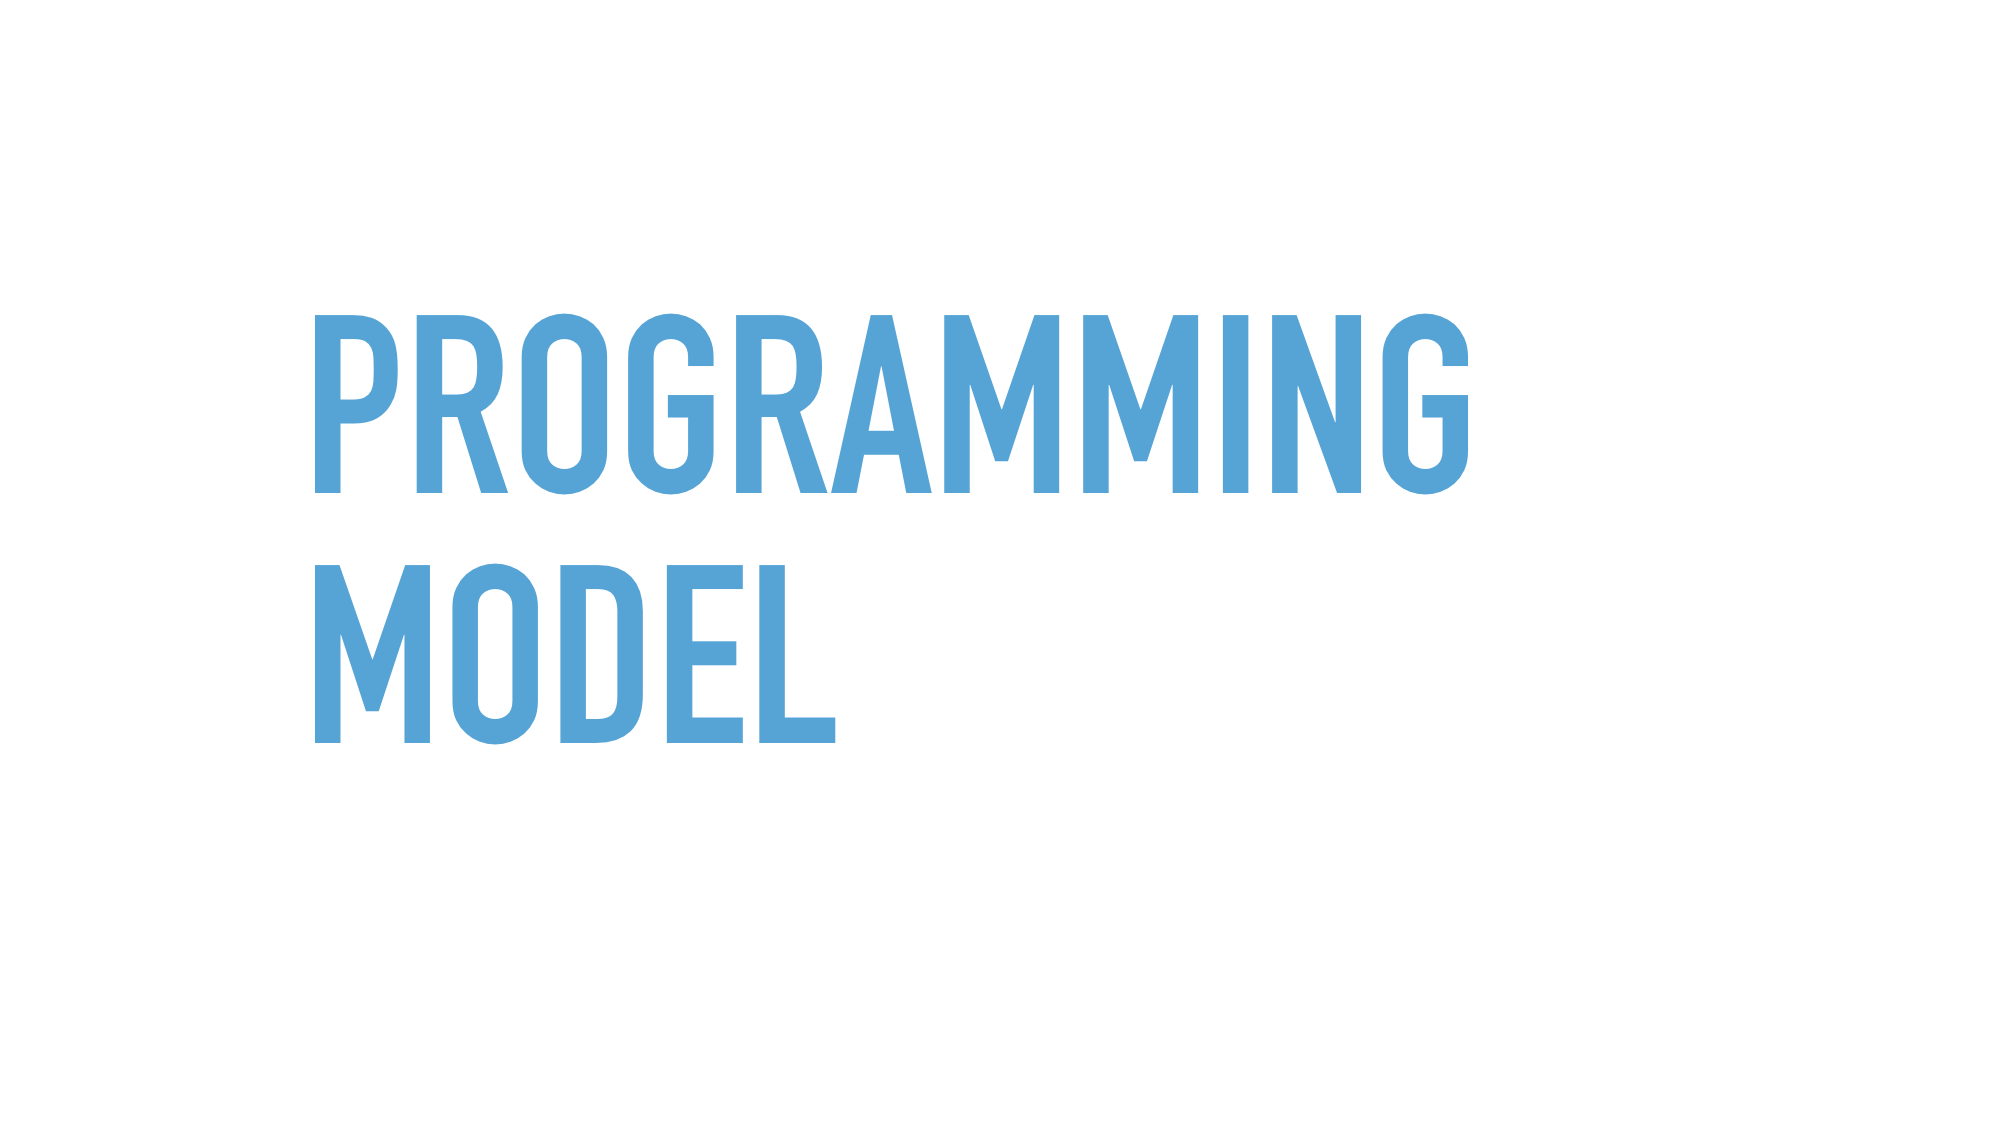 Slide text: Programming model